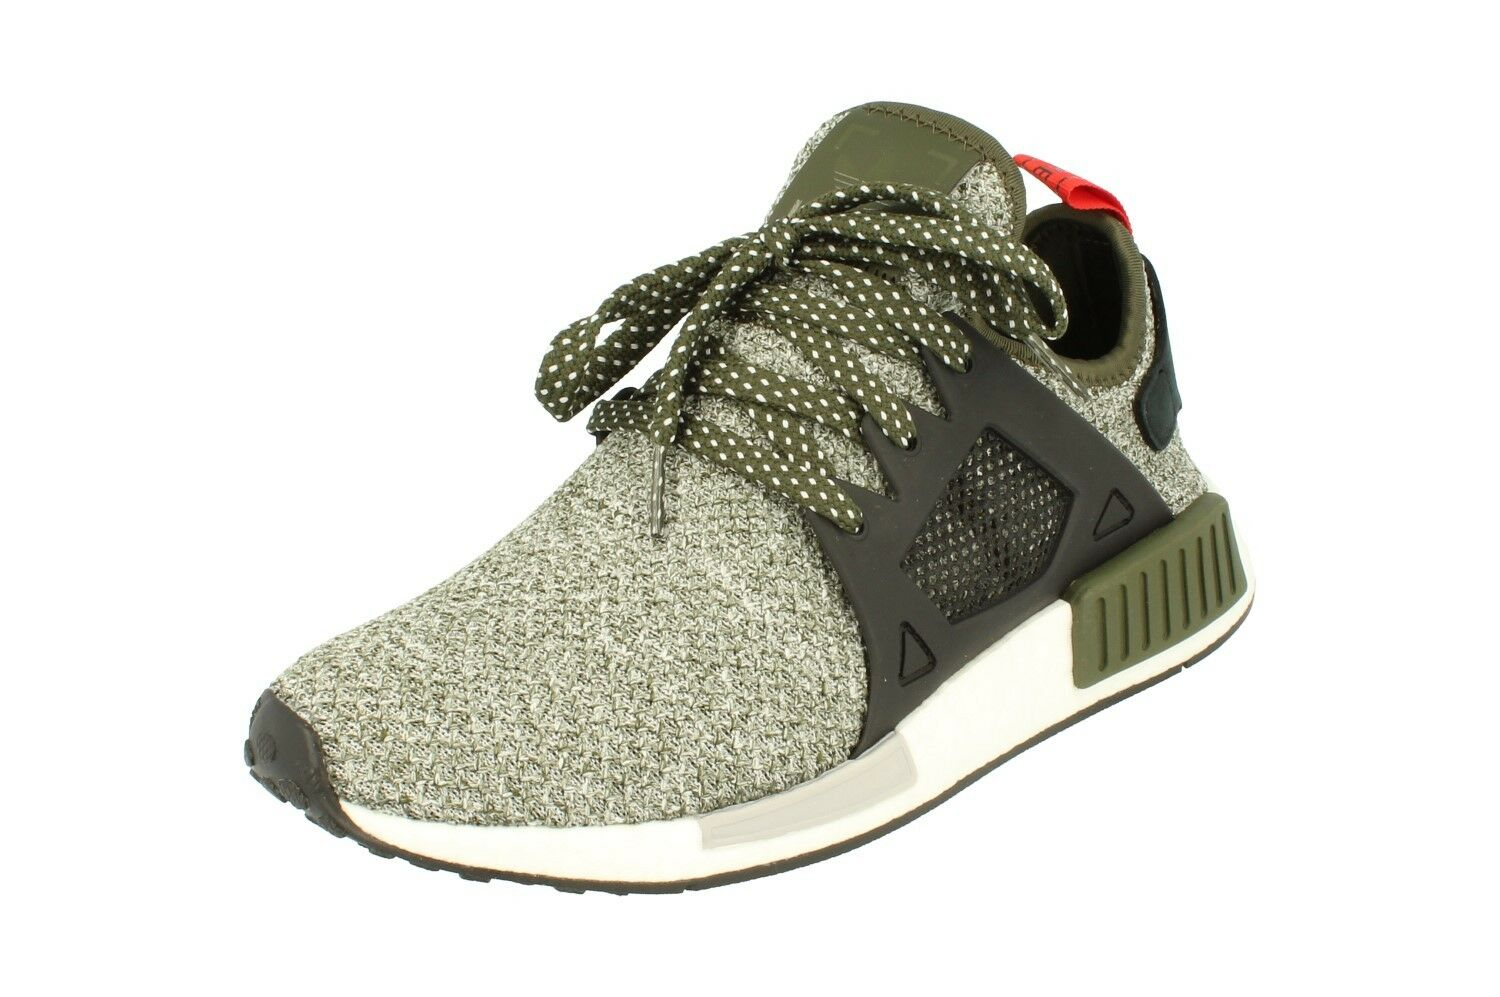 Adidas Trainers Originals Nmd_Xr1 Hombre Running Trainers Adidas Sneakers Zapatos CQ1954 c95343